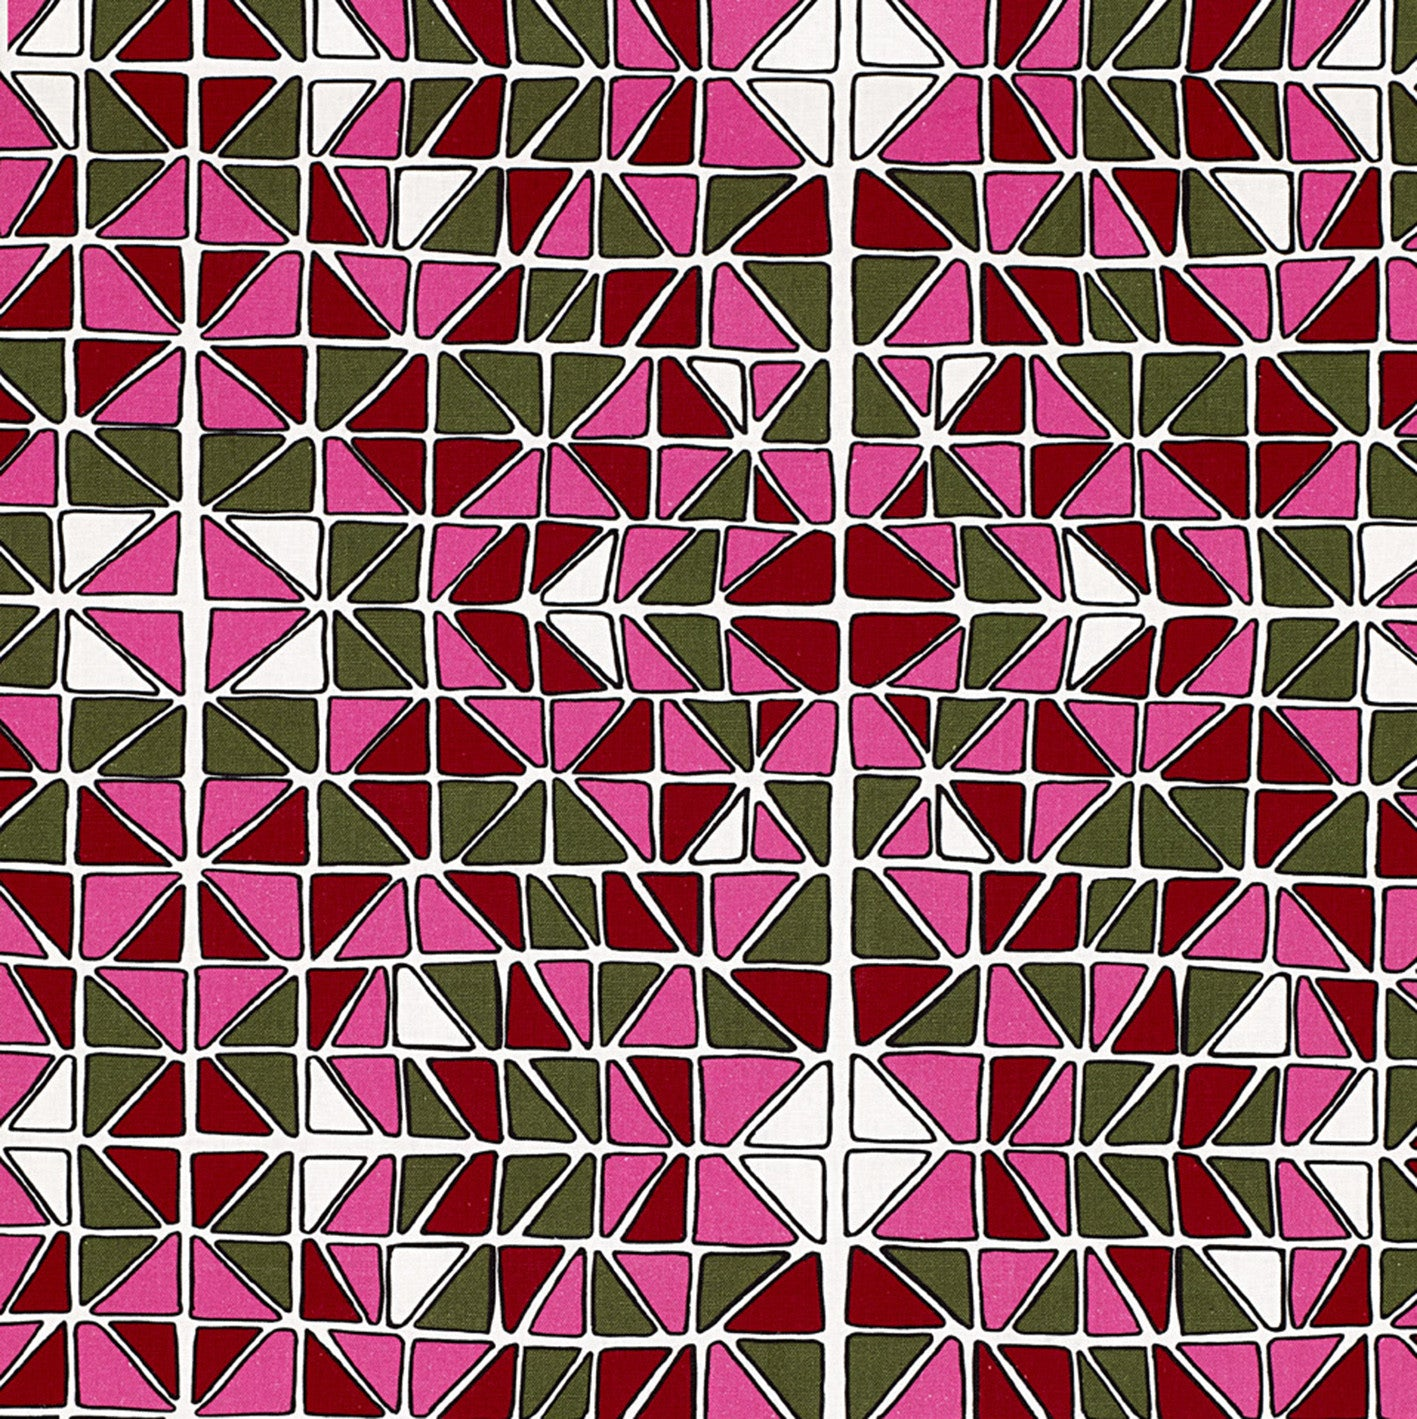 Mosaic Stained Glass Pattern Cotton Linen Fabric by the Meter in Fuchsia Pink, Green, Red